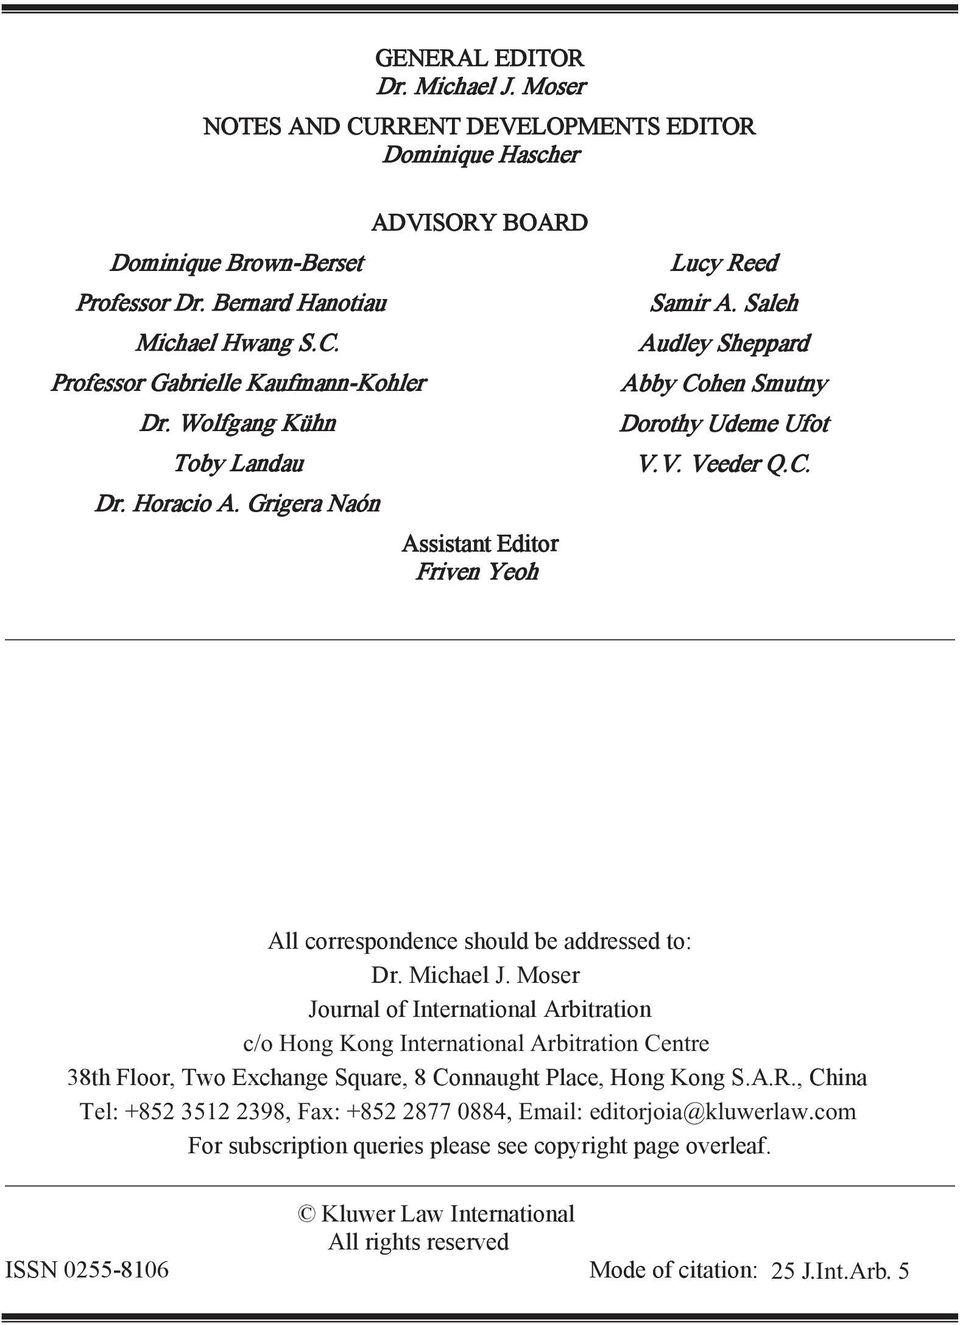 Michael J. Moser Journal of International Arbitration c/o Hong Kong International Arbitration Centre 38th Floor, Two Exchange Square, 8 Connaught Place, Hong Kong S.A.R.